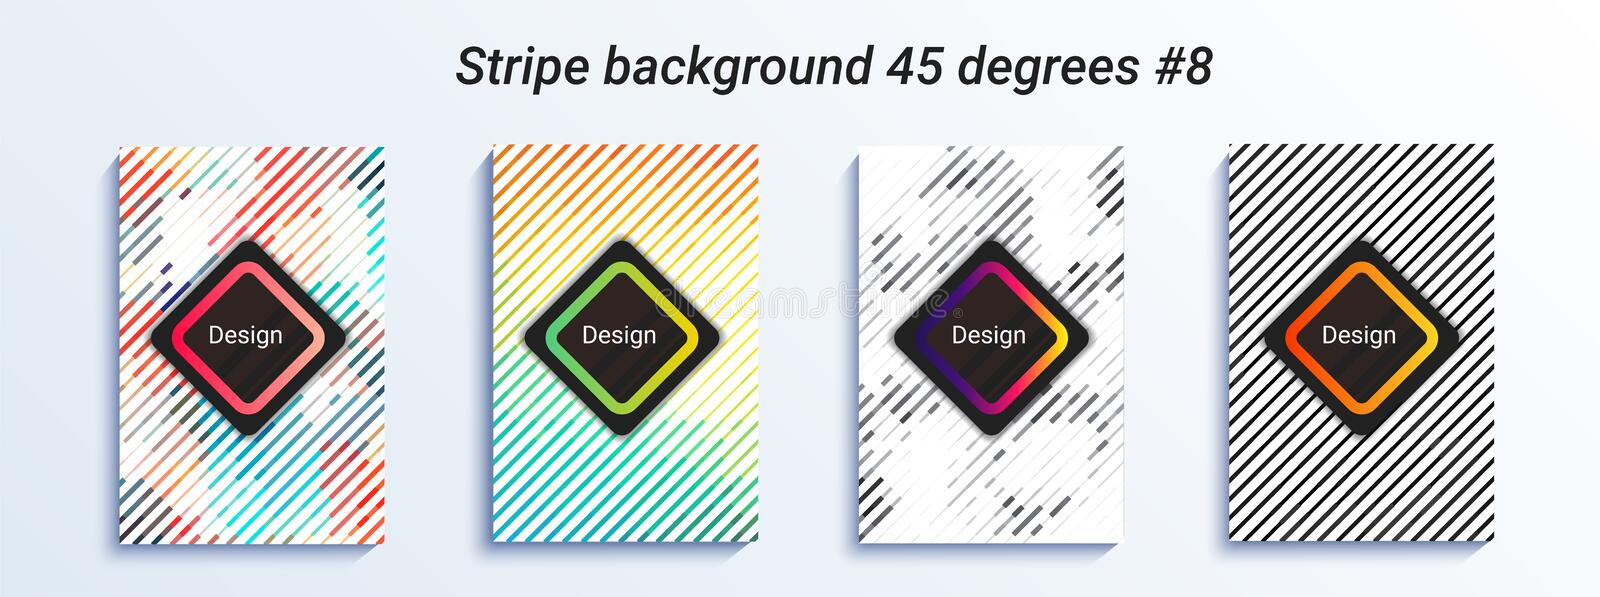 Conception rayée minimale de bakcground Gradient tramé coloré configuration géométrique lumineuse Illustration de vecteur illustration stock